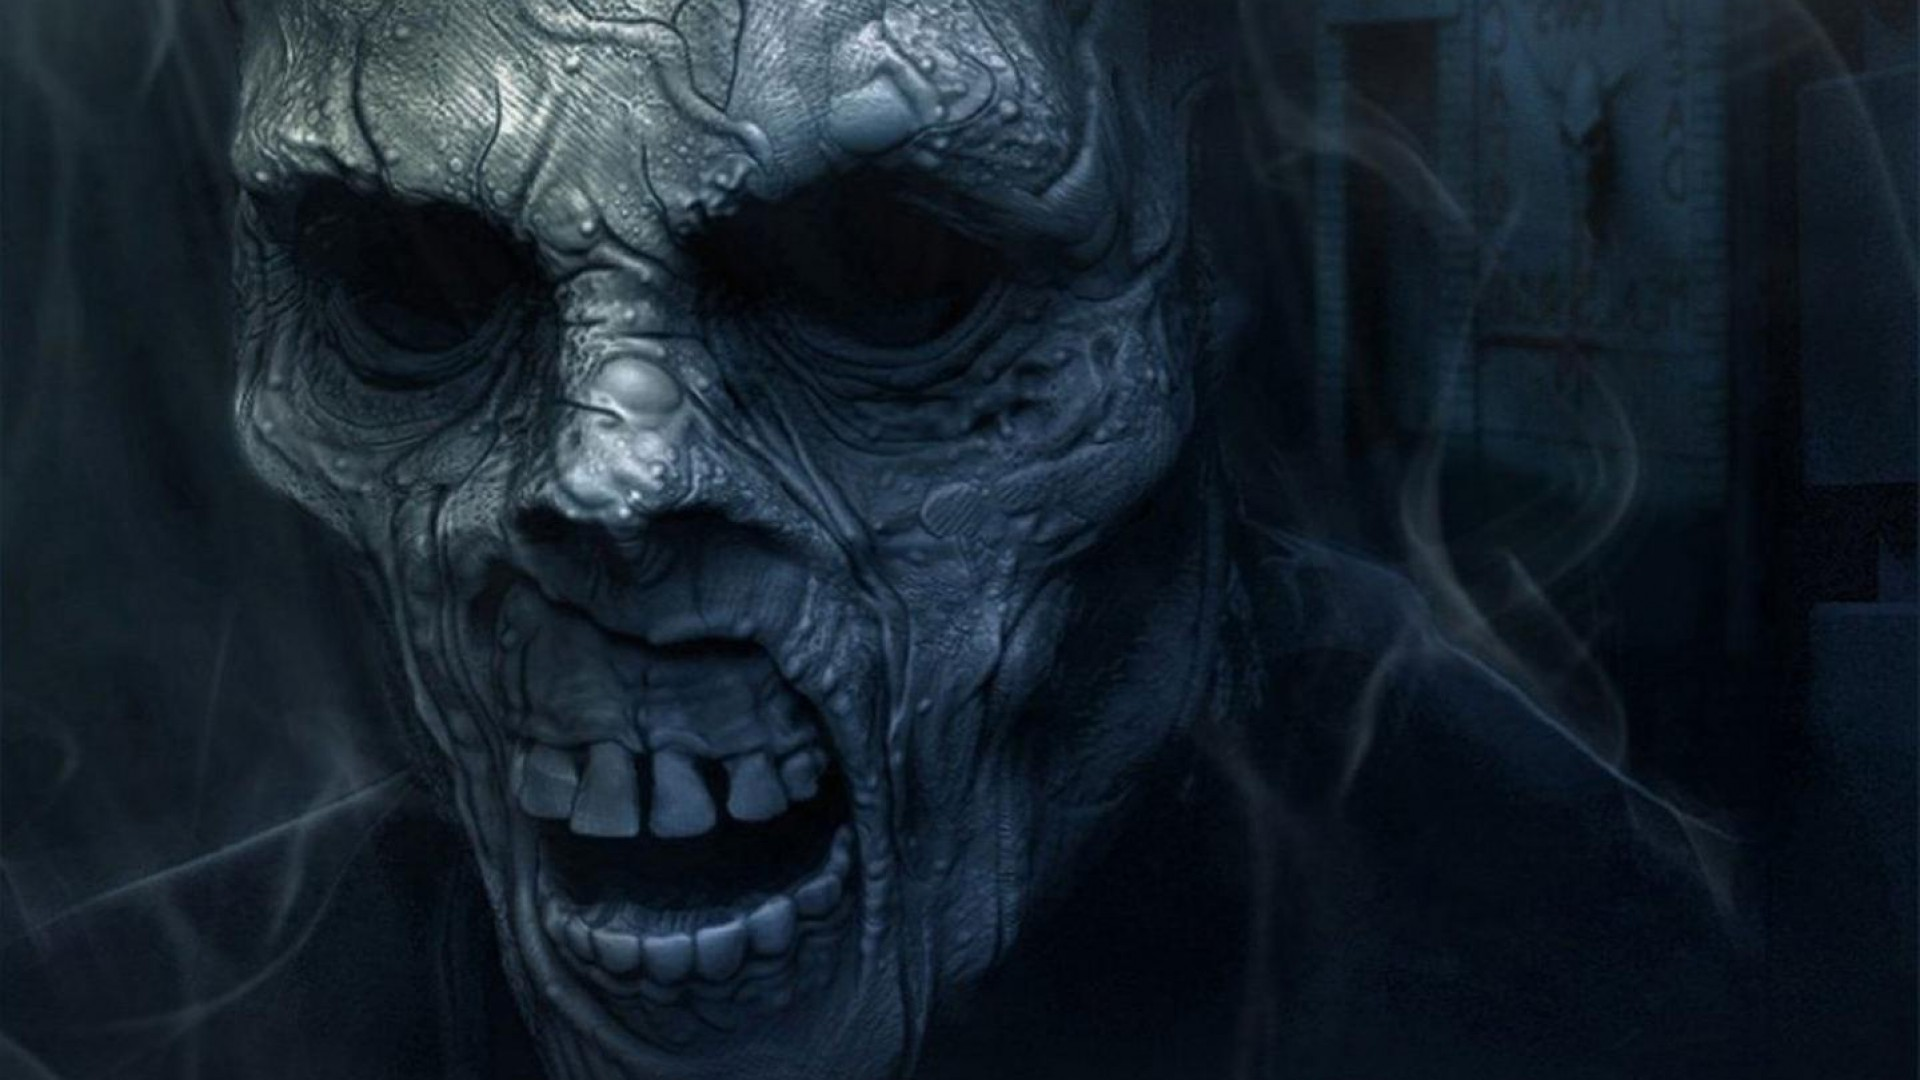 Most Scary Wallpapers Download Attitude Rocking 1920x1080